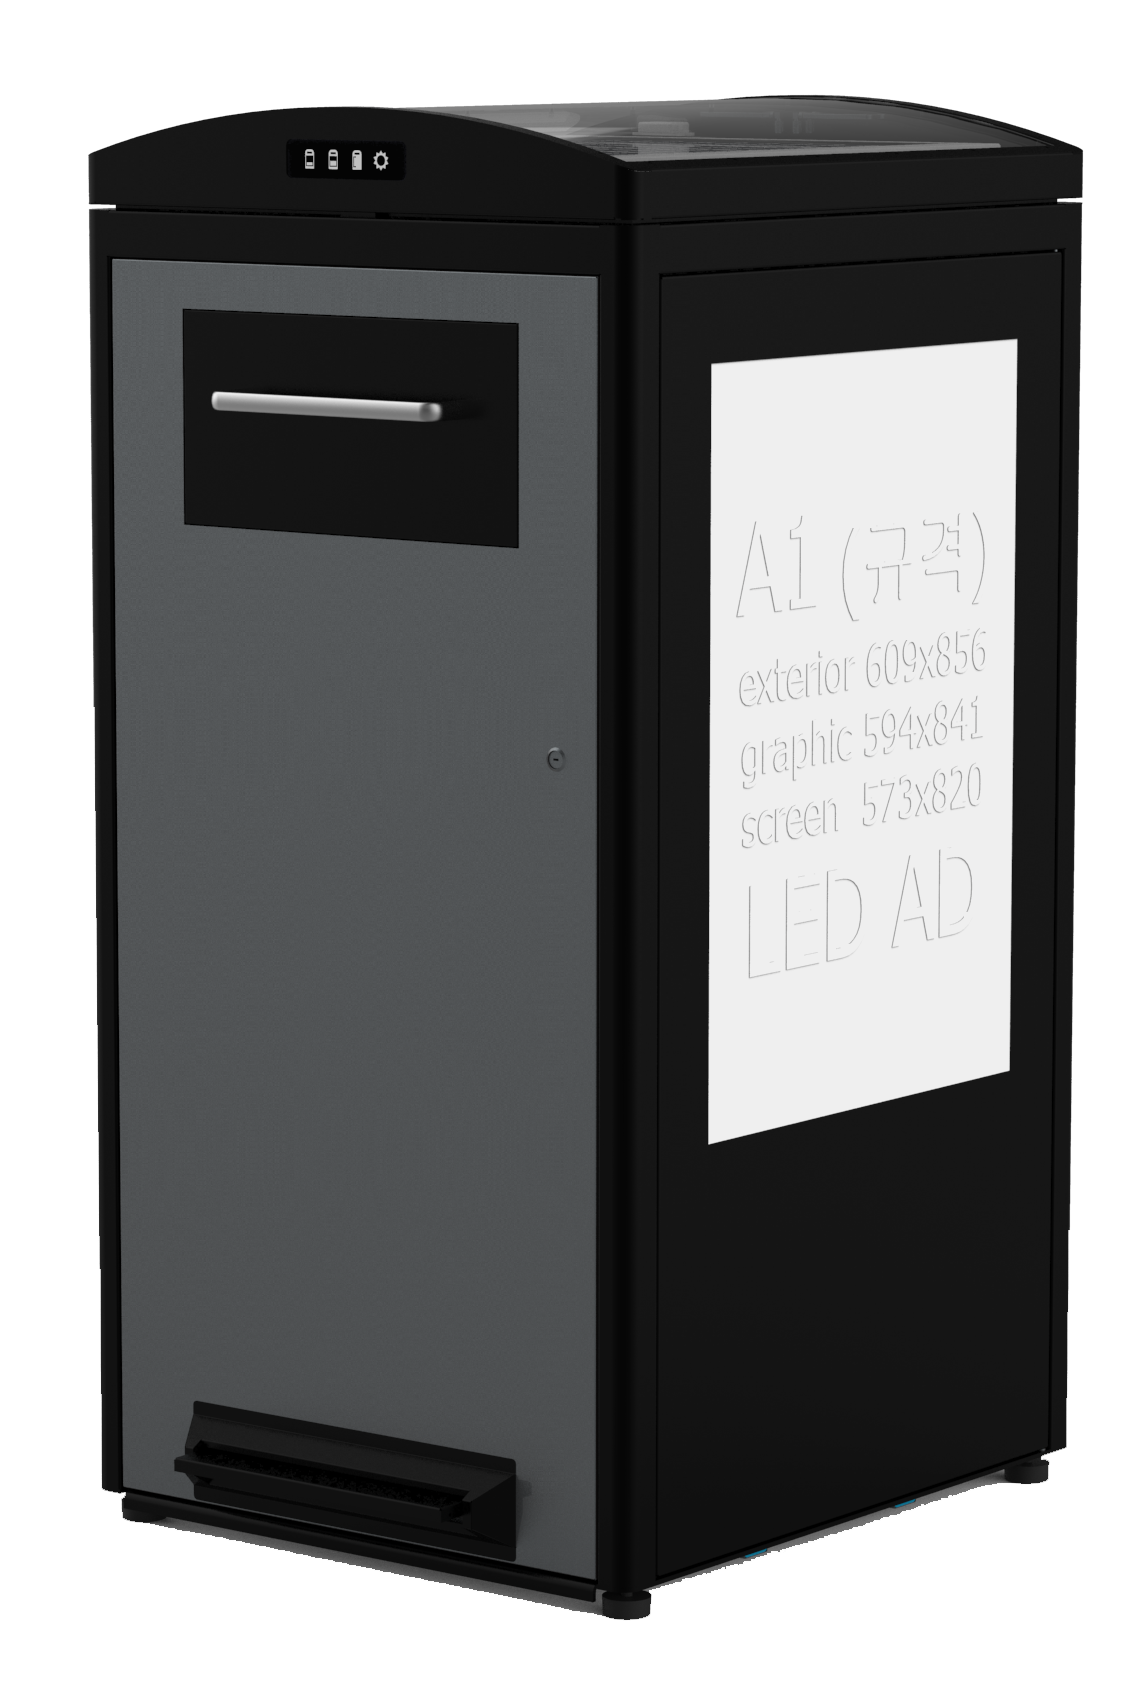 240L CleanCUBE solar-powered waste compacting bin